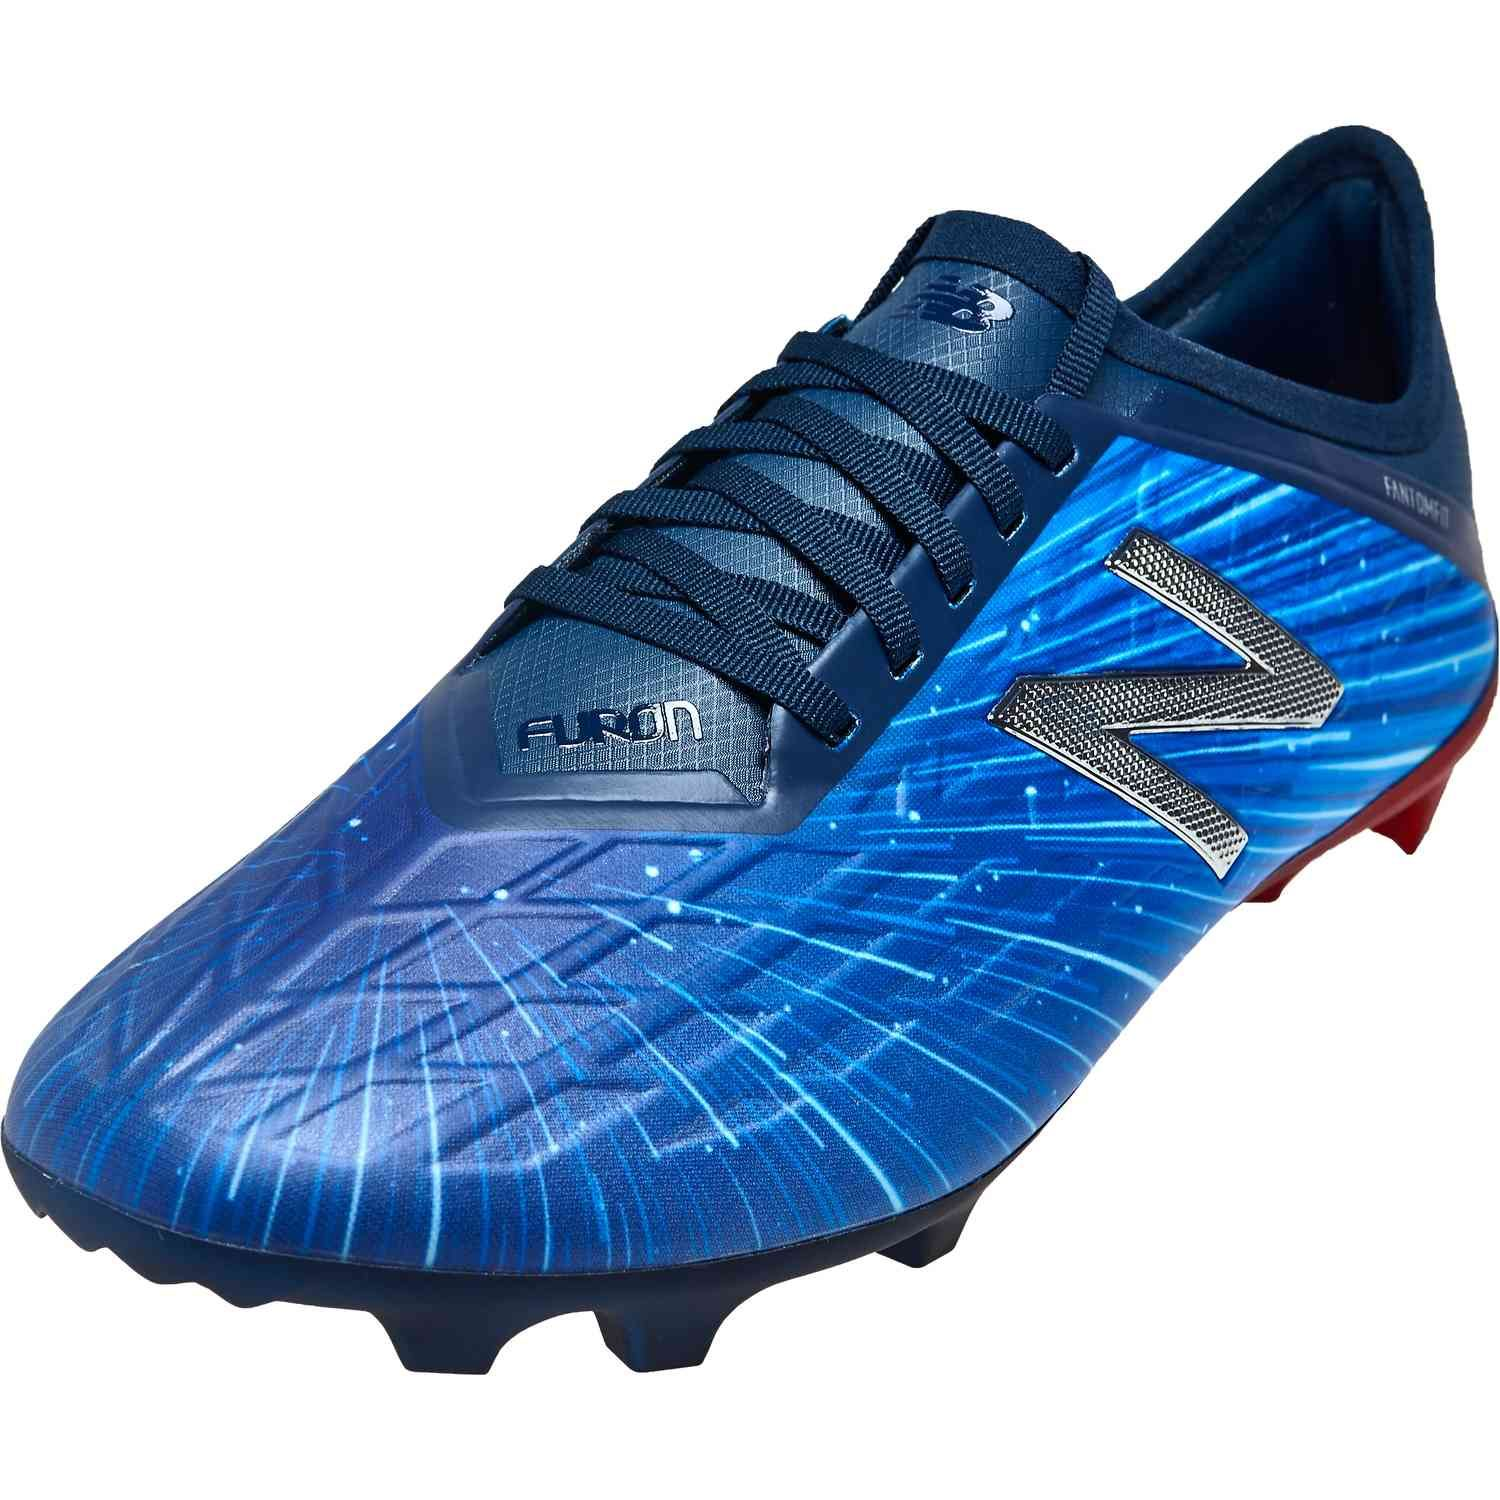 Football boots, Soccer shoes, Soccer boots